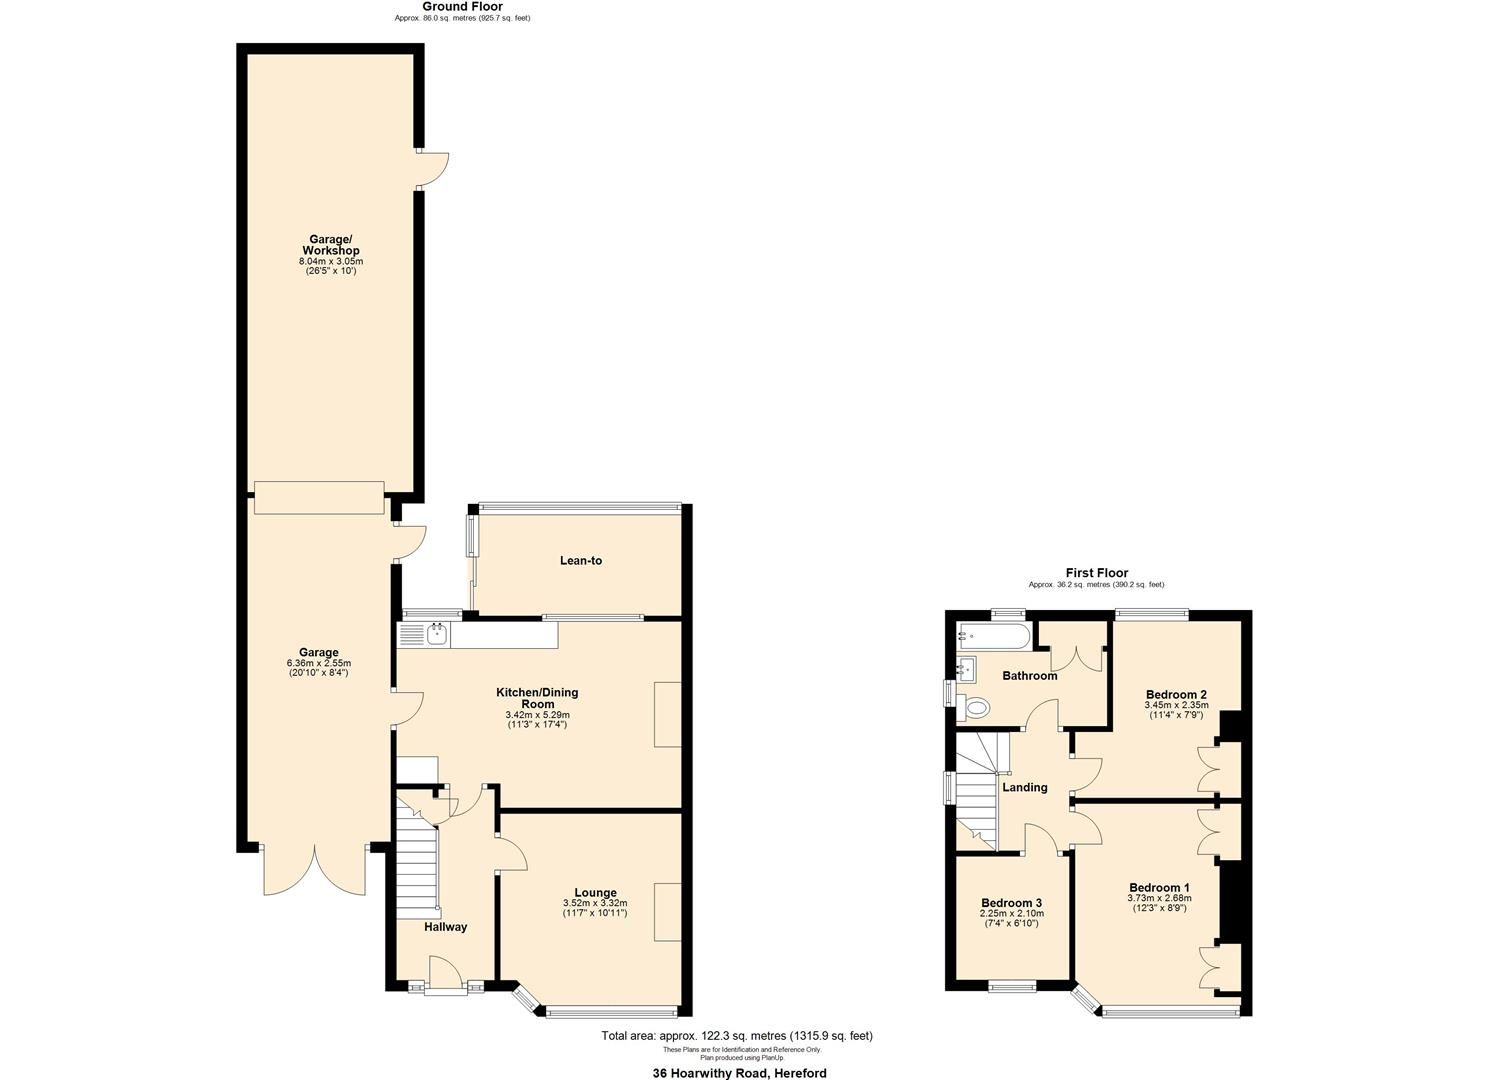 3 bed semi-detached for sale in Hereford - Property Floorplan